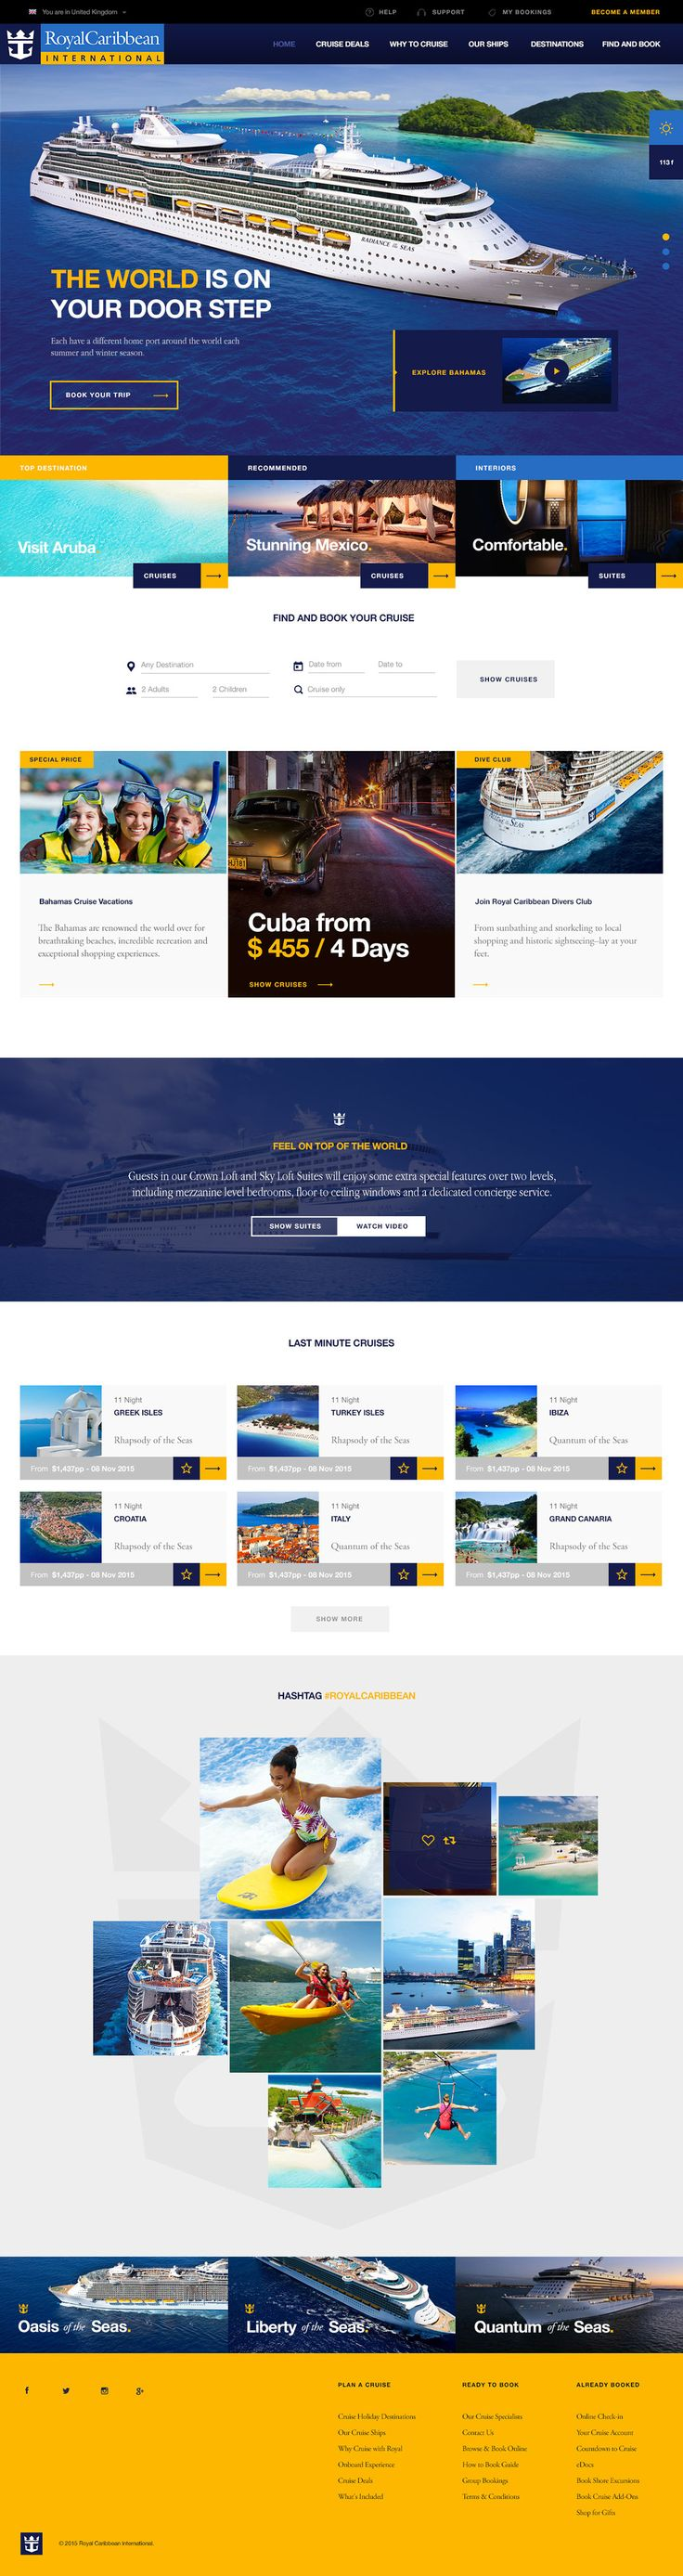 Royal Caribbean on Behance